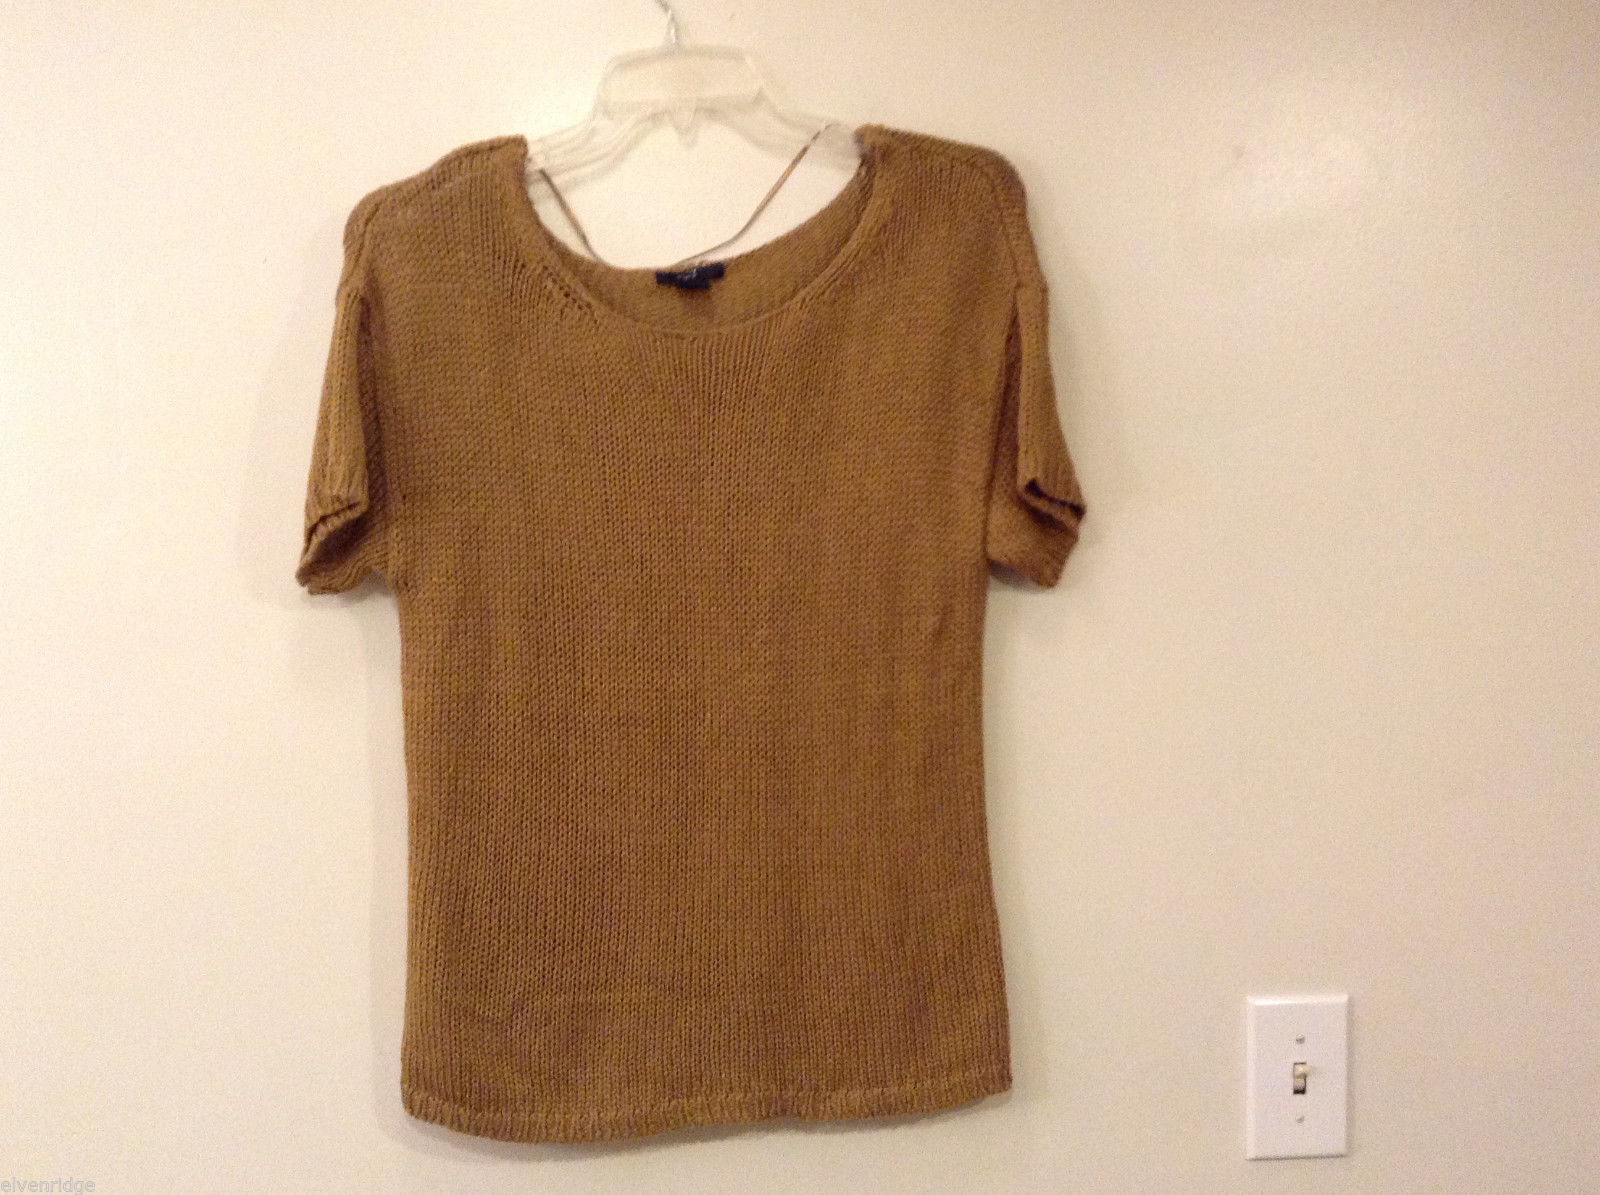 H&M Women's Size M Thick Open-Knit Sweater Short Sleeves Bronze Tan Scoop Neck